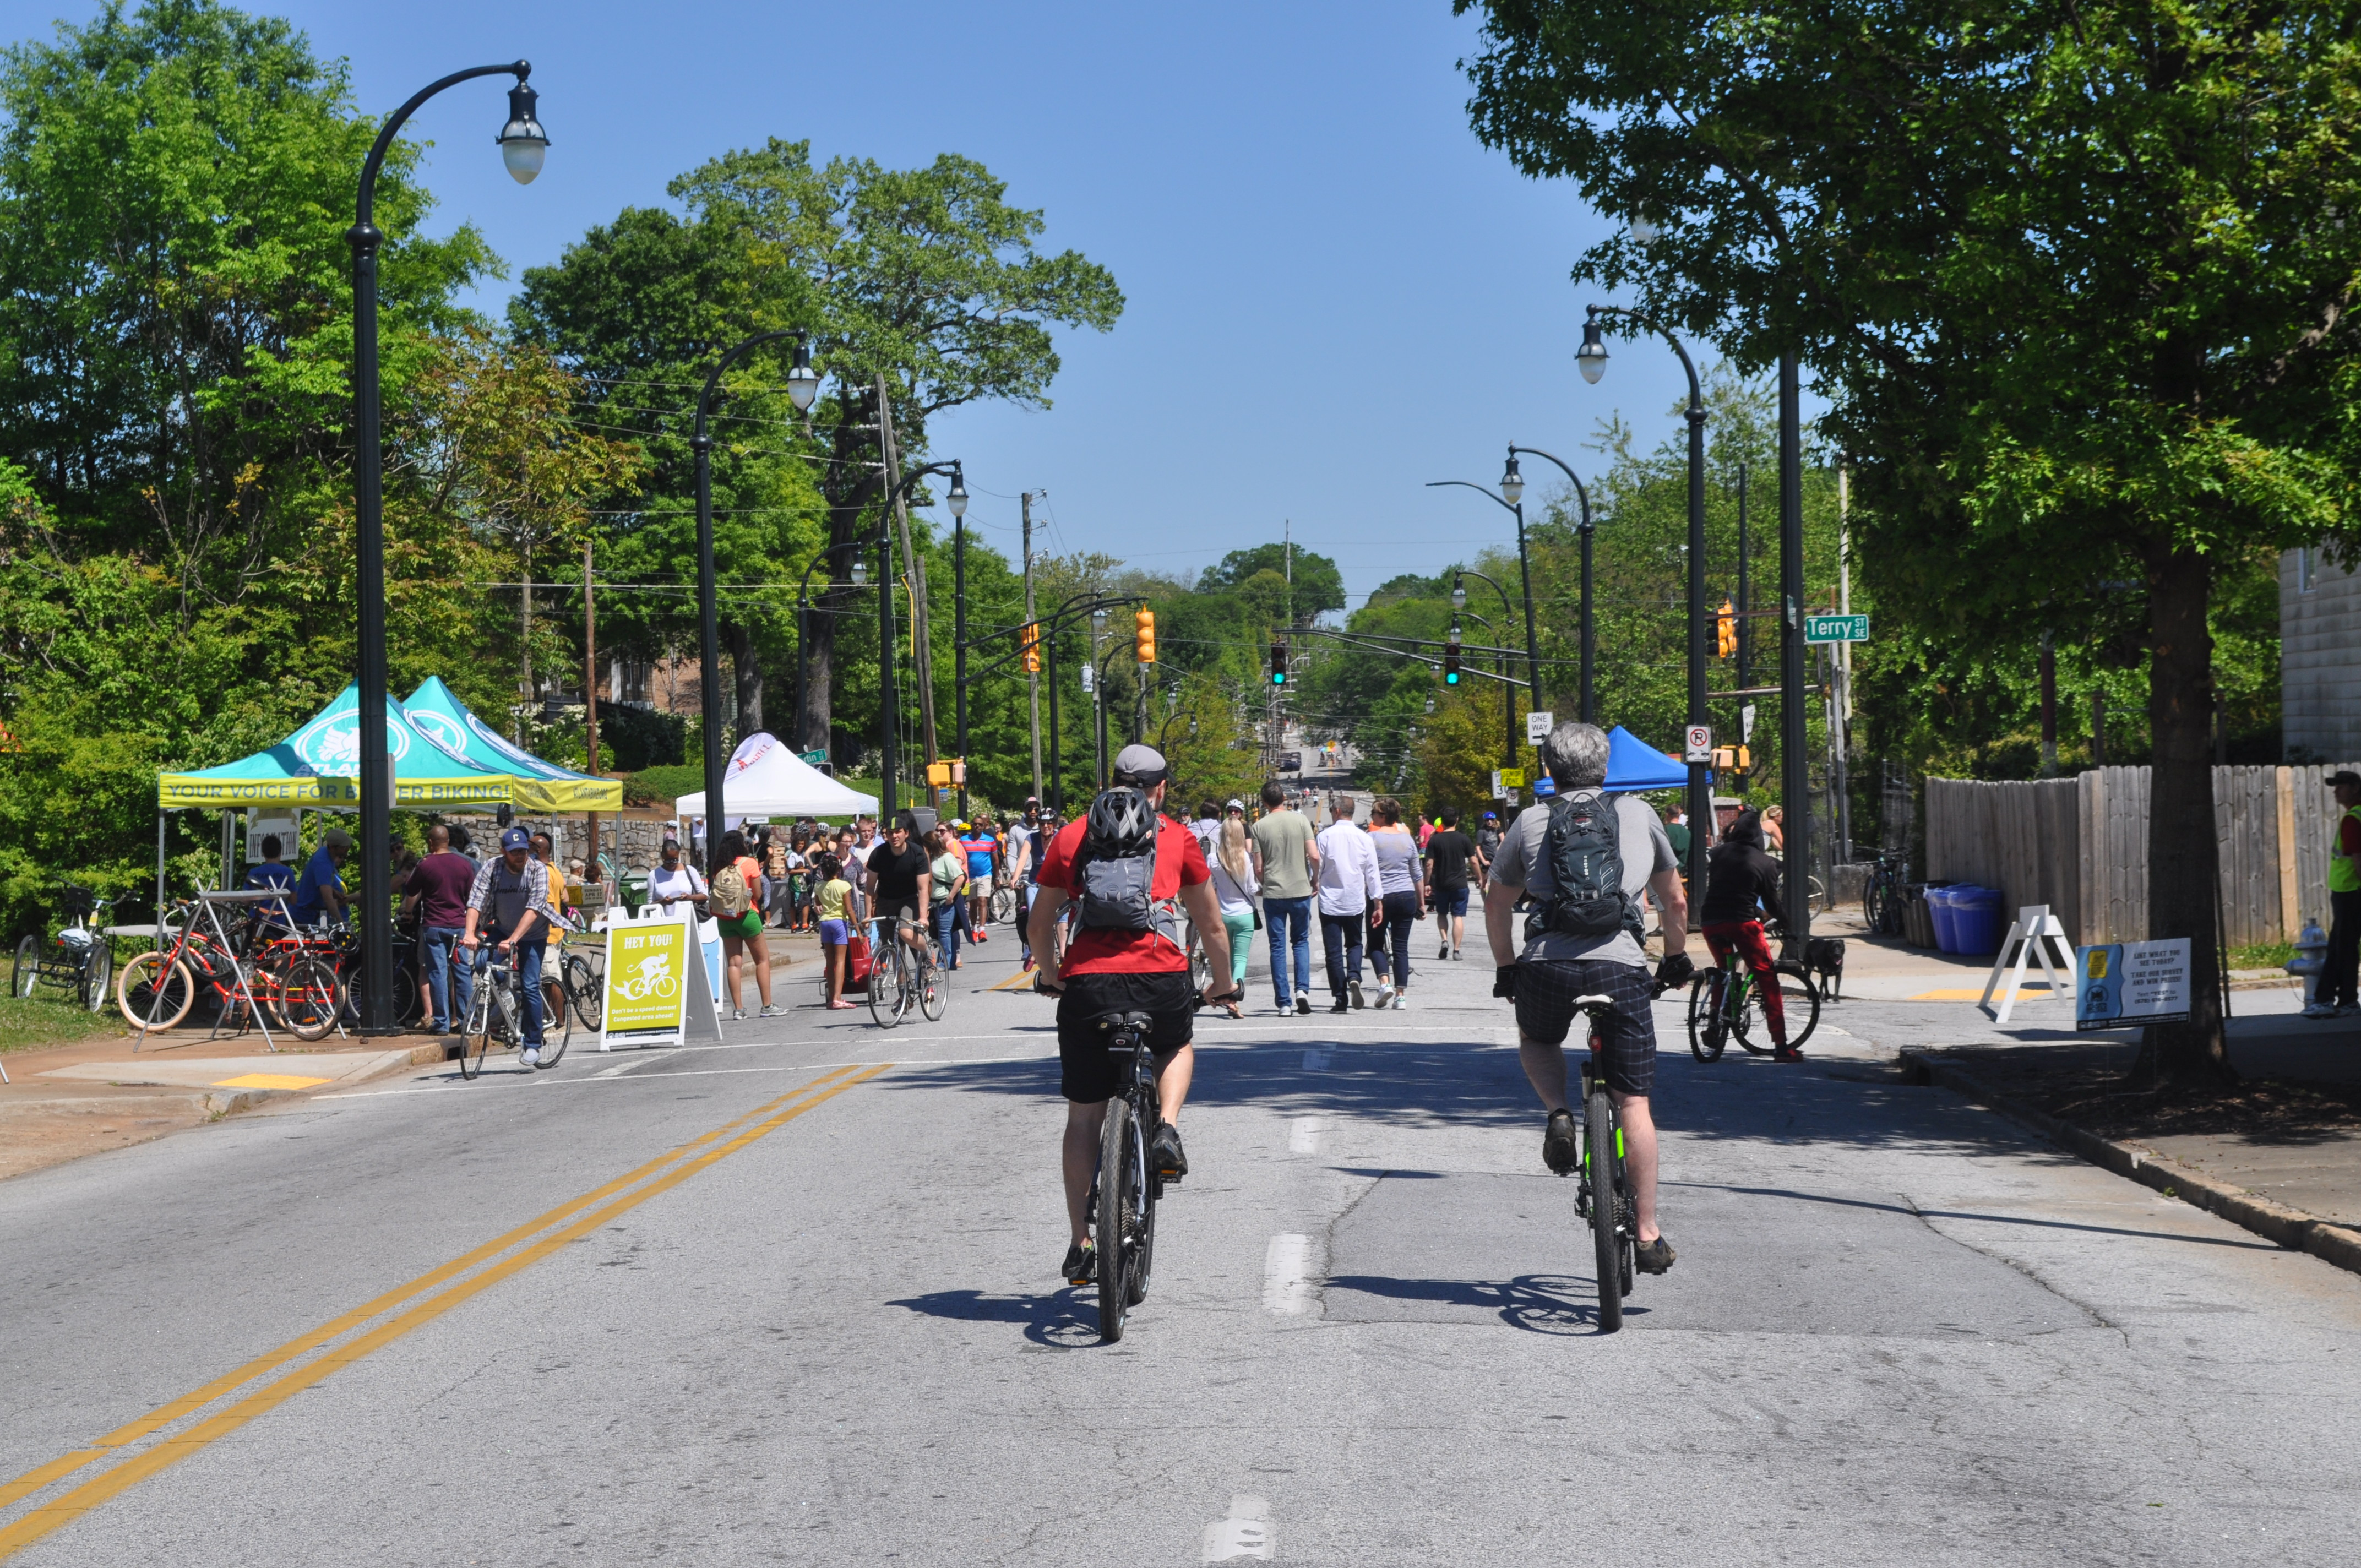 Cyclists and pedestrians take up all the car lanes.